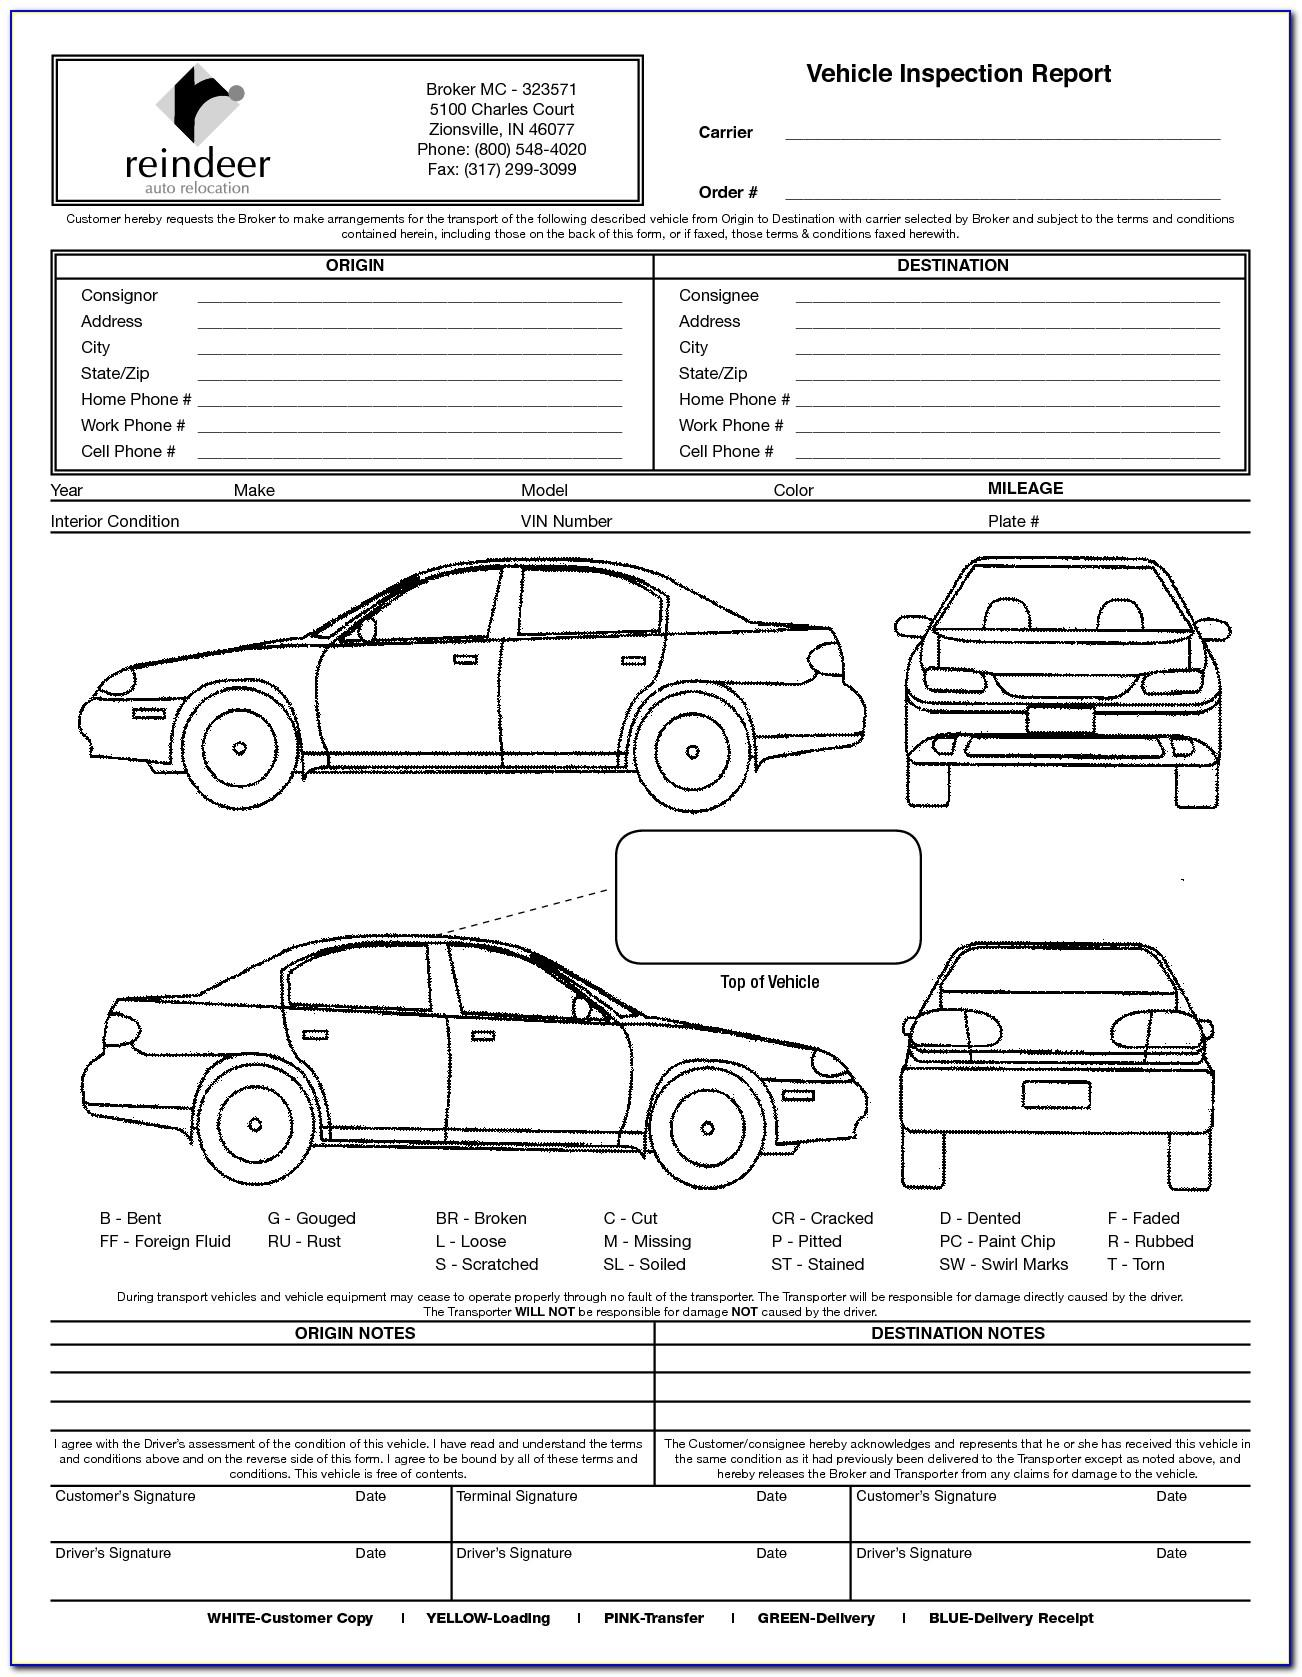 Motor Vehicle Inspection Report Form Download